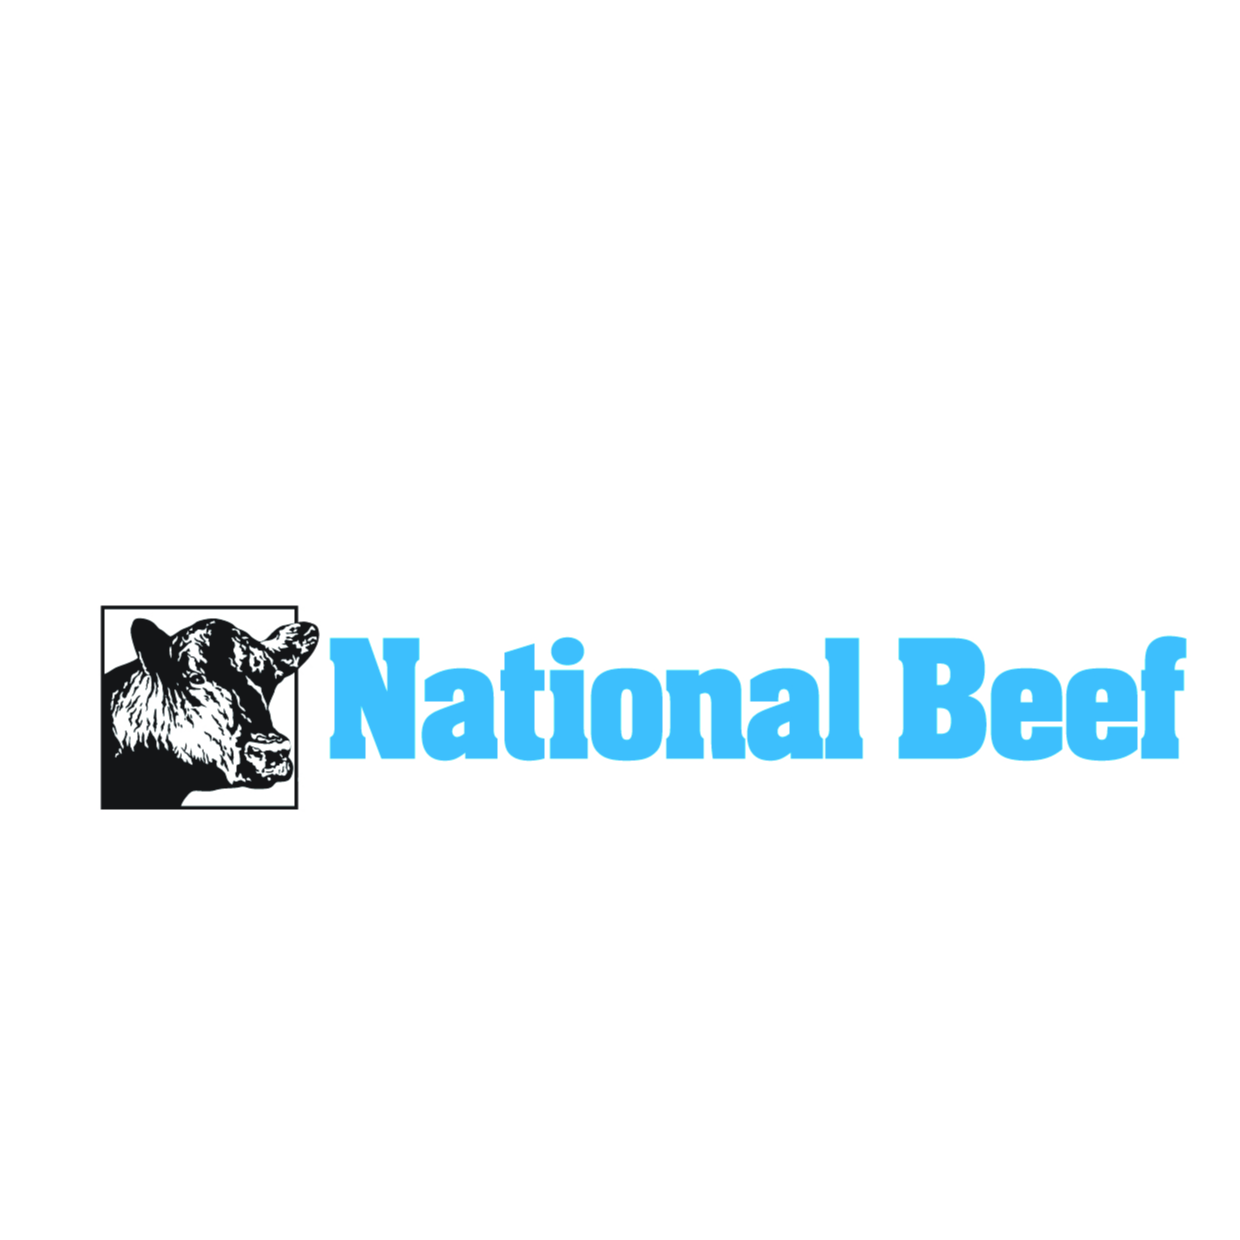 National Beef Packing Company